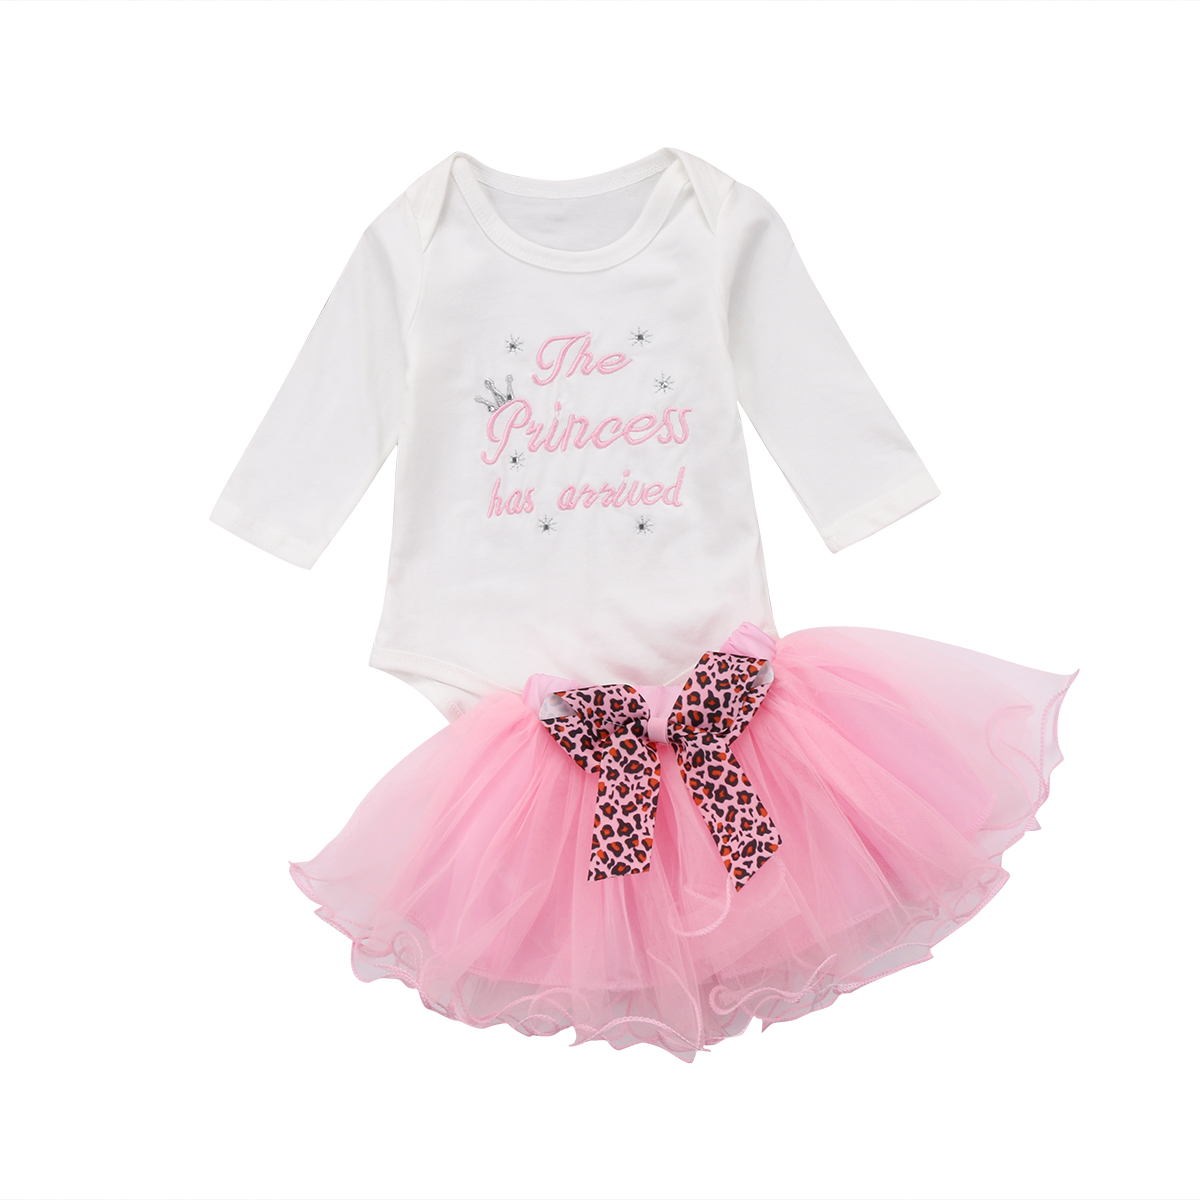 2018 Infant Newborn Baby Girl Cute Clothes Long Sleeve Letter Rompers Playsuit Bow Tutu Skirt Outfit Set Clothes new